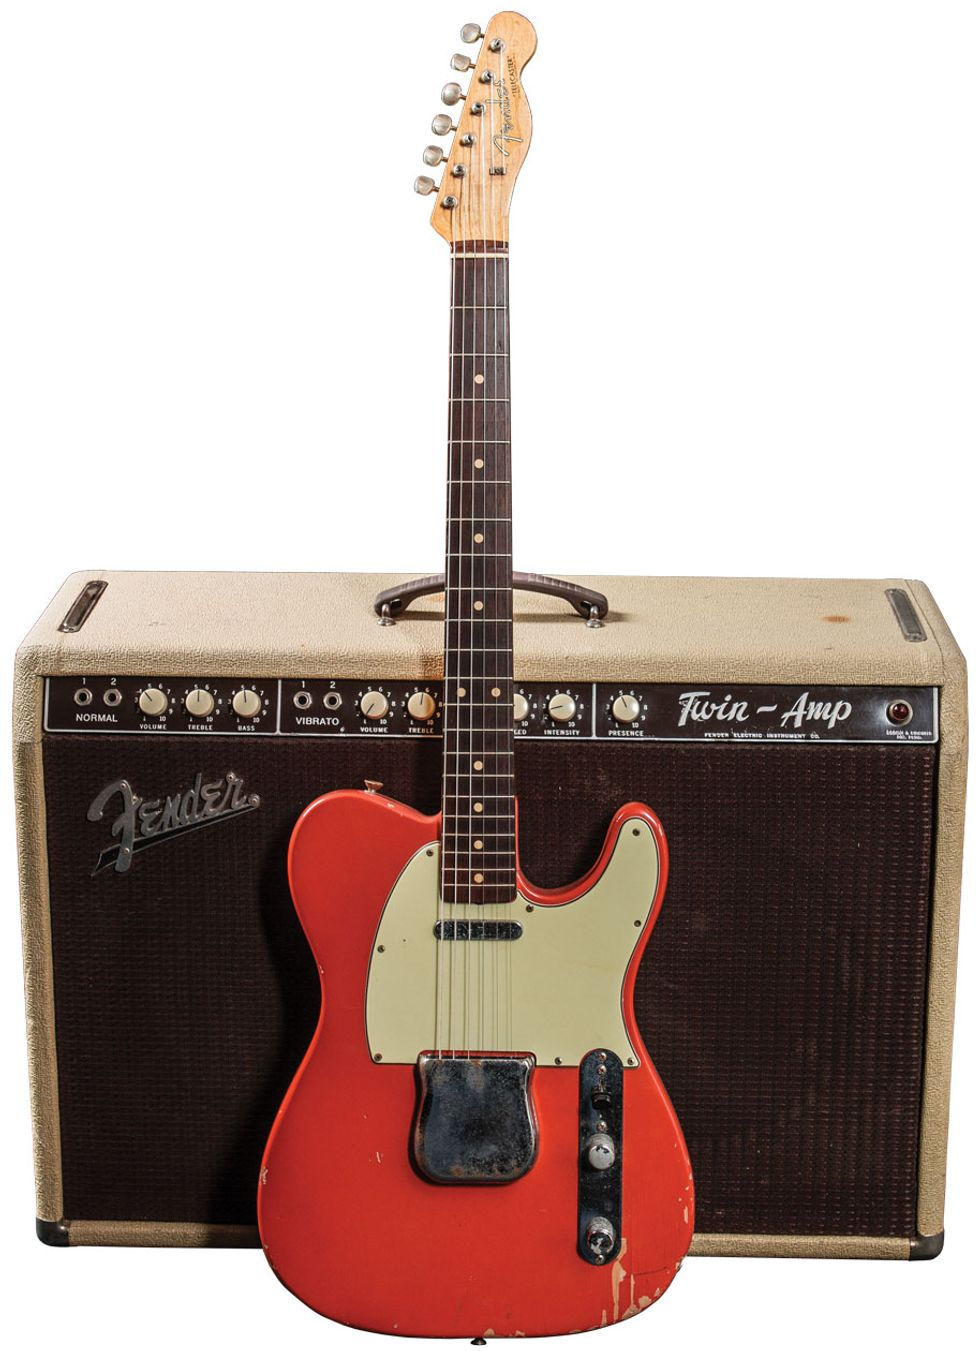 Like A Fine Wine And The Perfect Cheese This 1962 Tele Fender Twin From Same Year Seem To Mesh Better With Age In Case Result Is